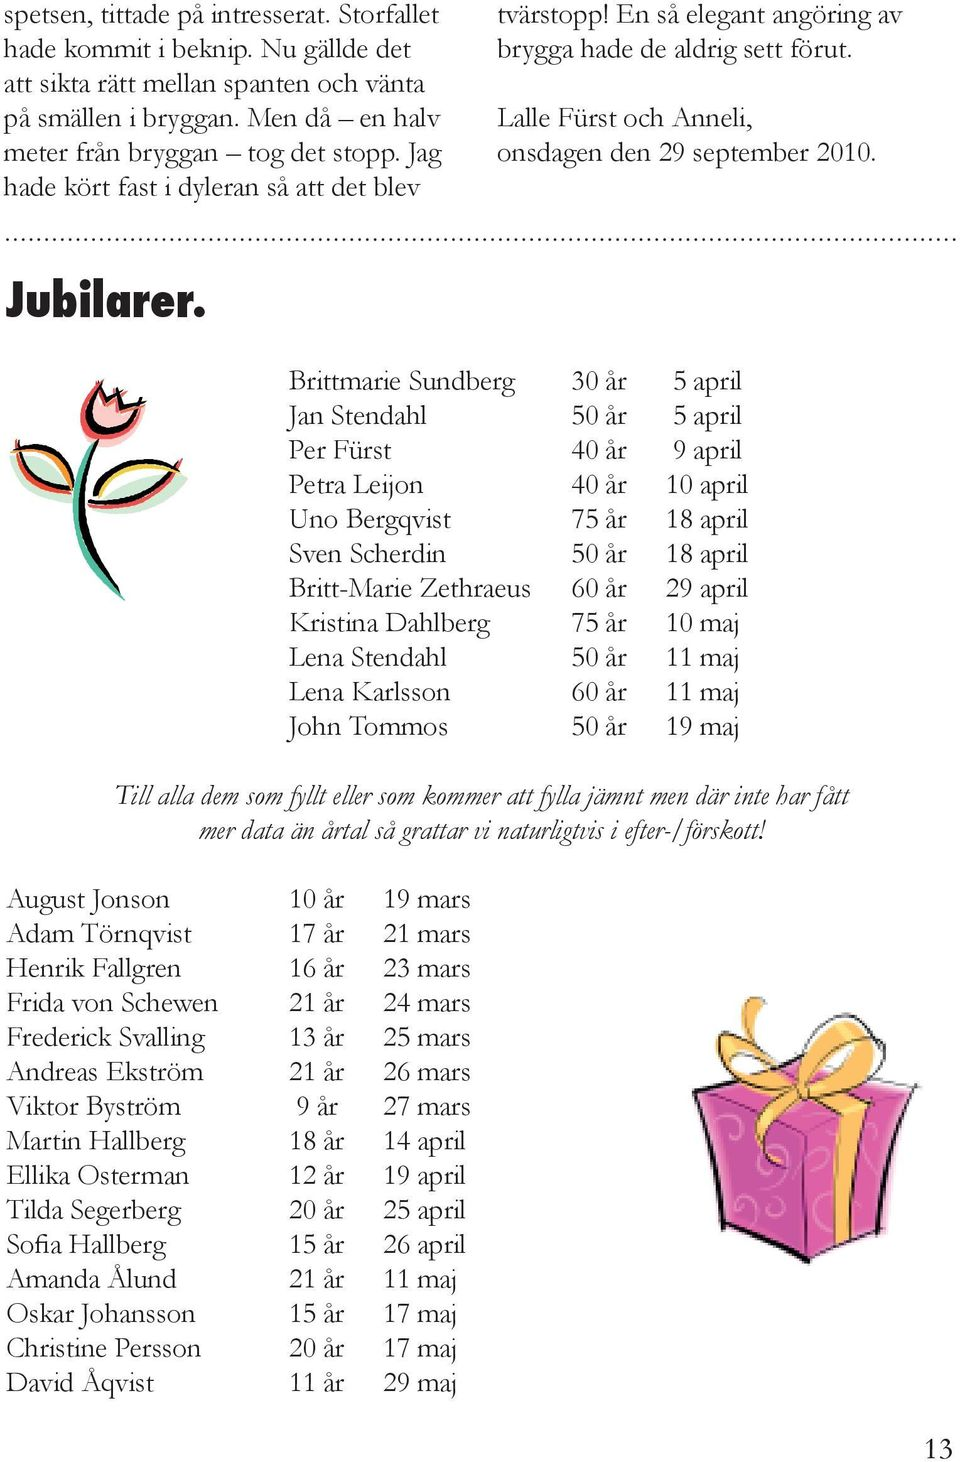 Brittmarie Sundberg 30 år 5 april Jan Stendahl 50 år 5 april Per Fürst 40 år 9 april Petra Leijon 40 år 10 april Uno Bergqvist 75 år 18 april Sven Scherdin 50 år 18 april Britt-Marie Zethraeus 60 år